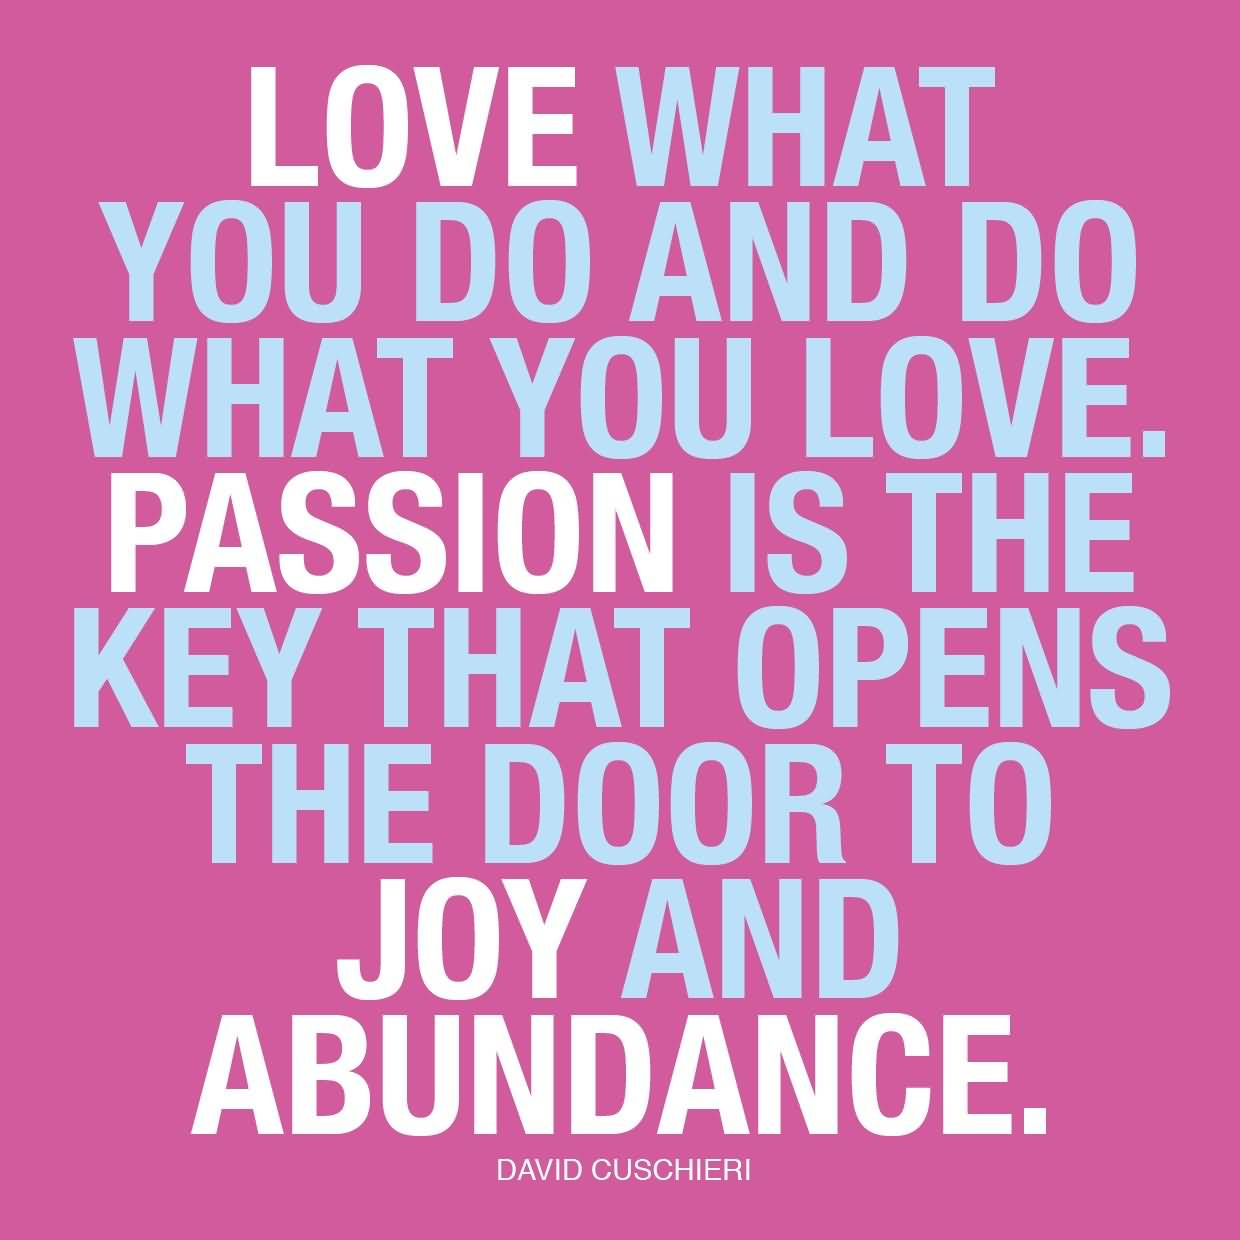 Passion Quotes Love What You Do And Do What You Love David Cuschieri